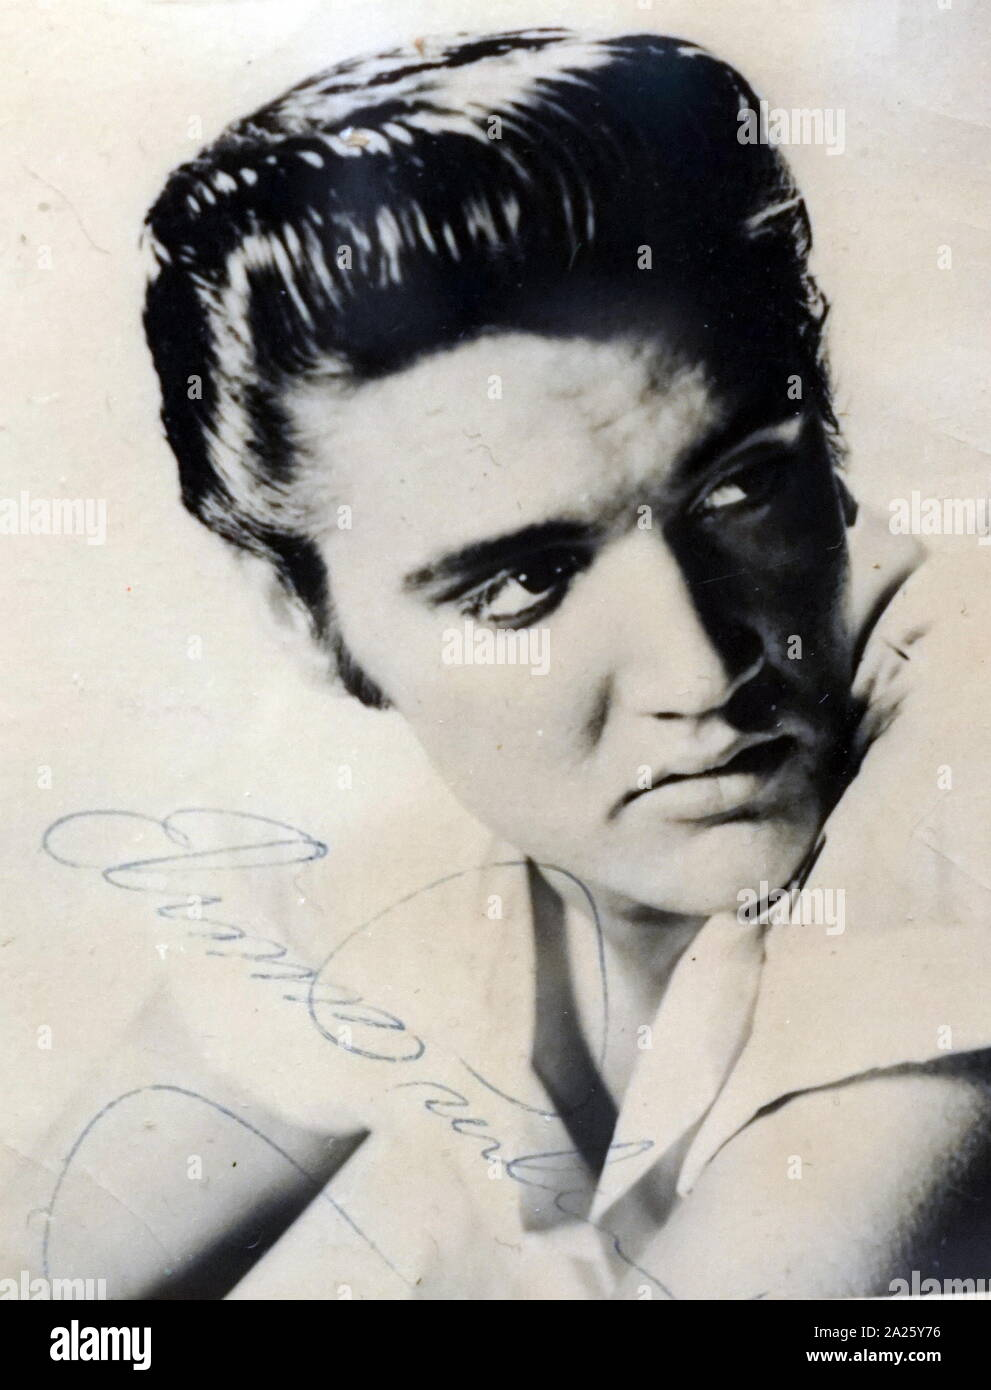 An Autographed Photograph Of Elvis Presley Elvis Aaron Presley 1935 1977 An American Singer And Actor Stock Photo Alamy